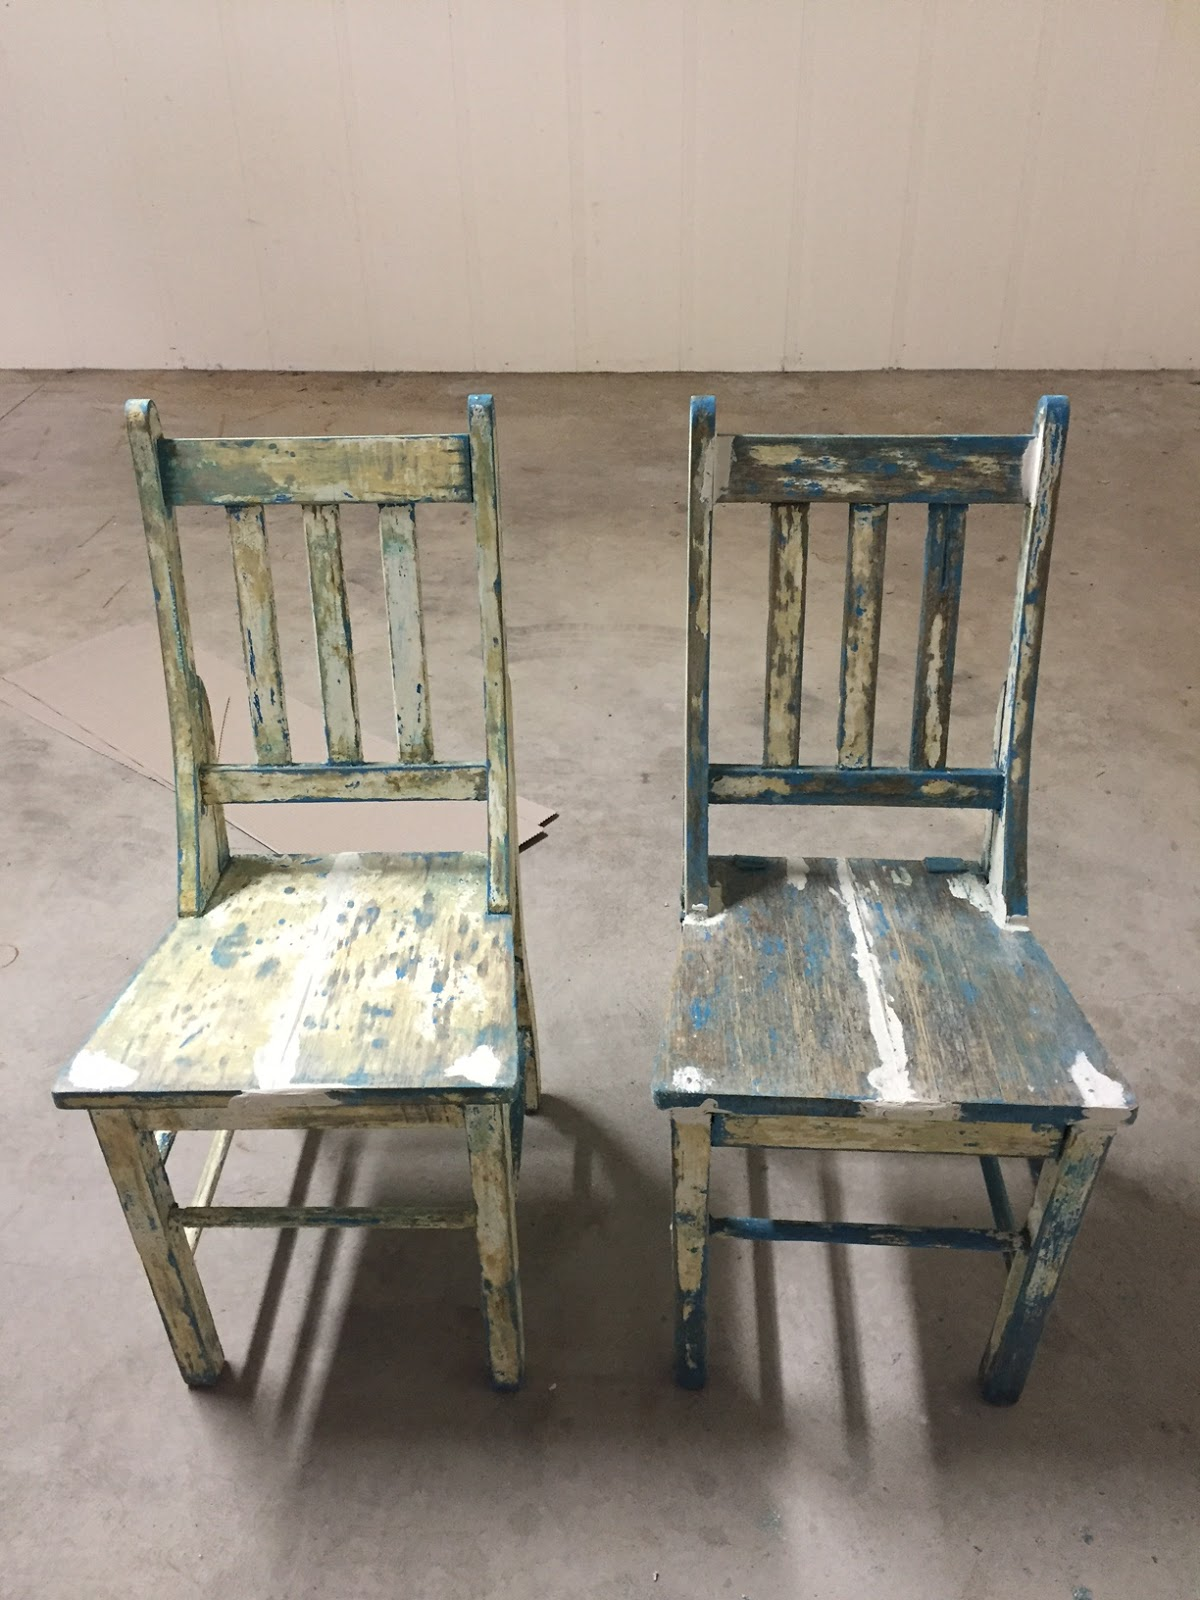 Chairs post paint stripper and joint reinforcement the bare bones were not pretty